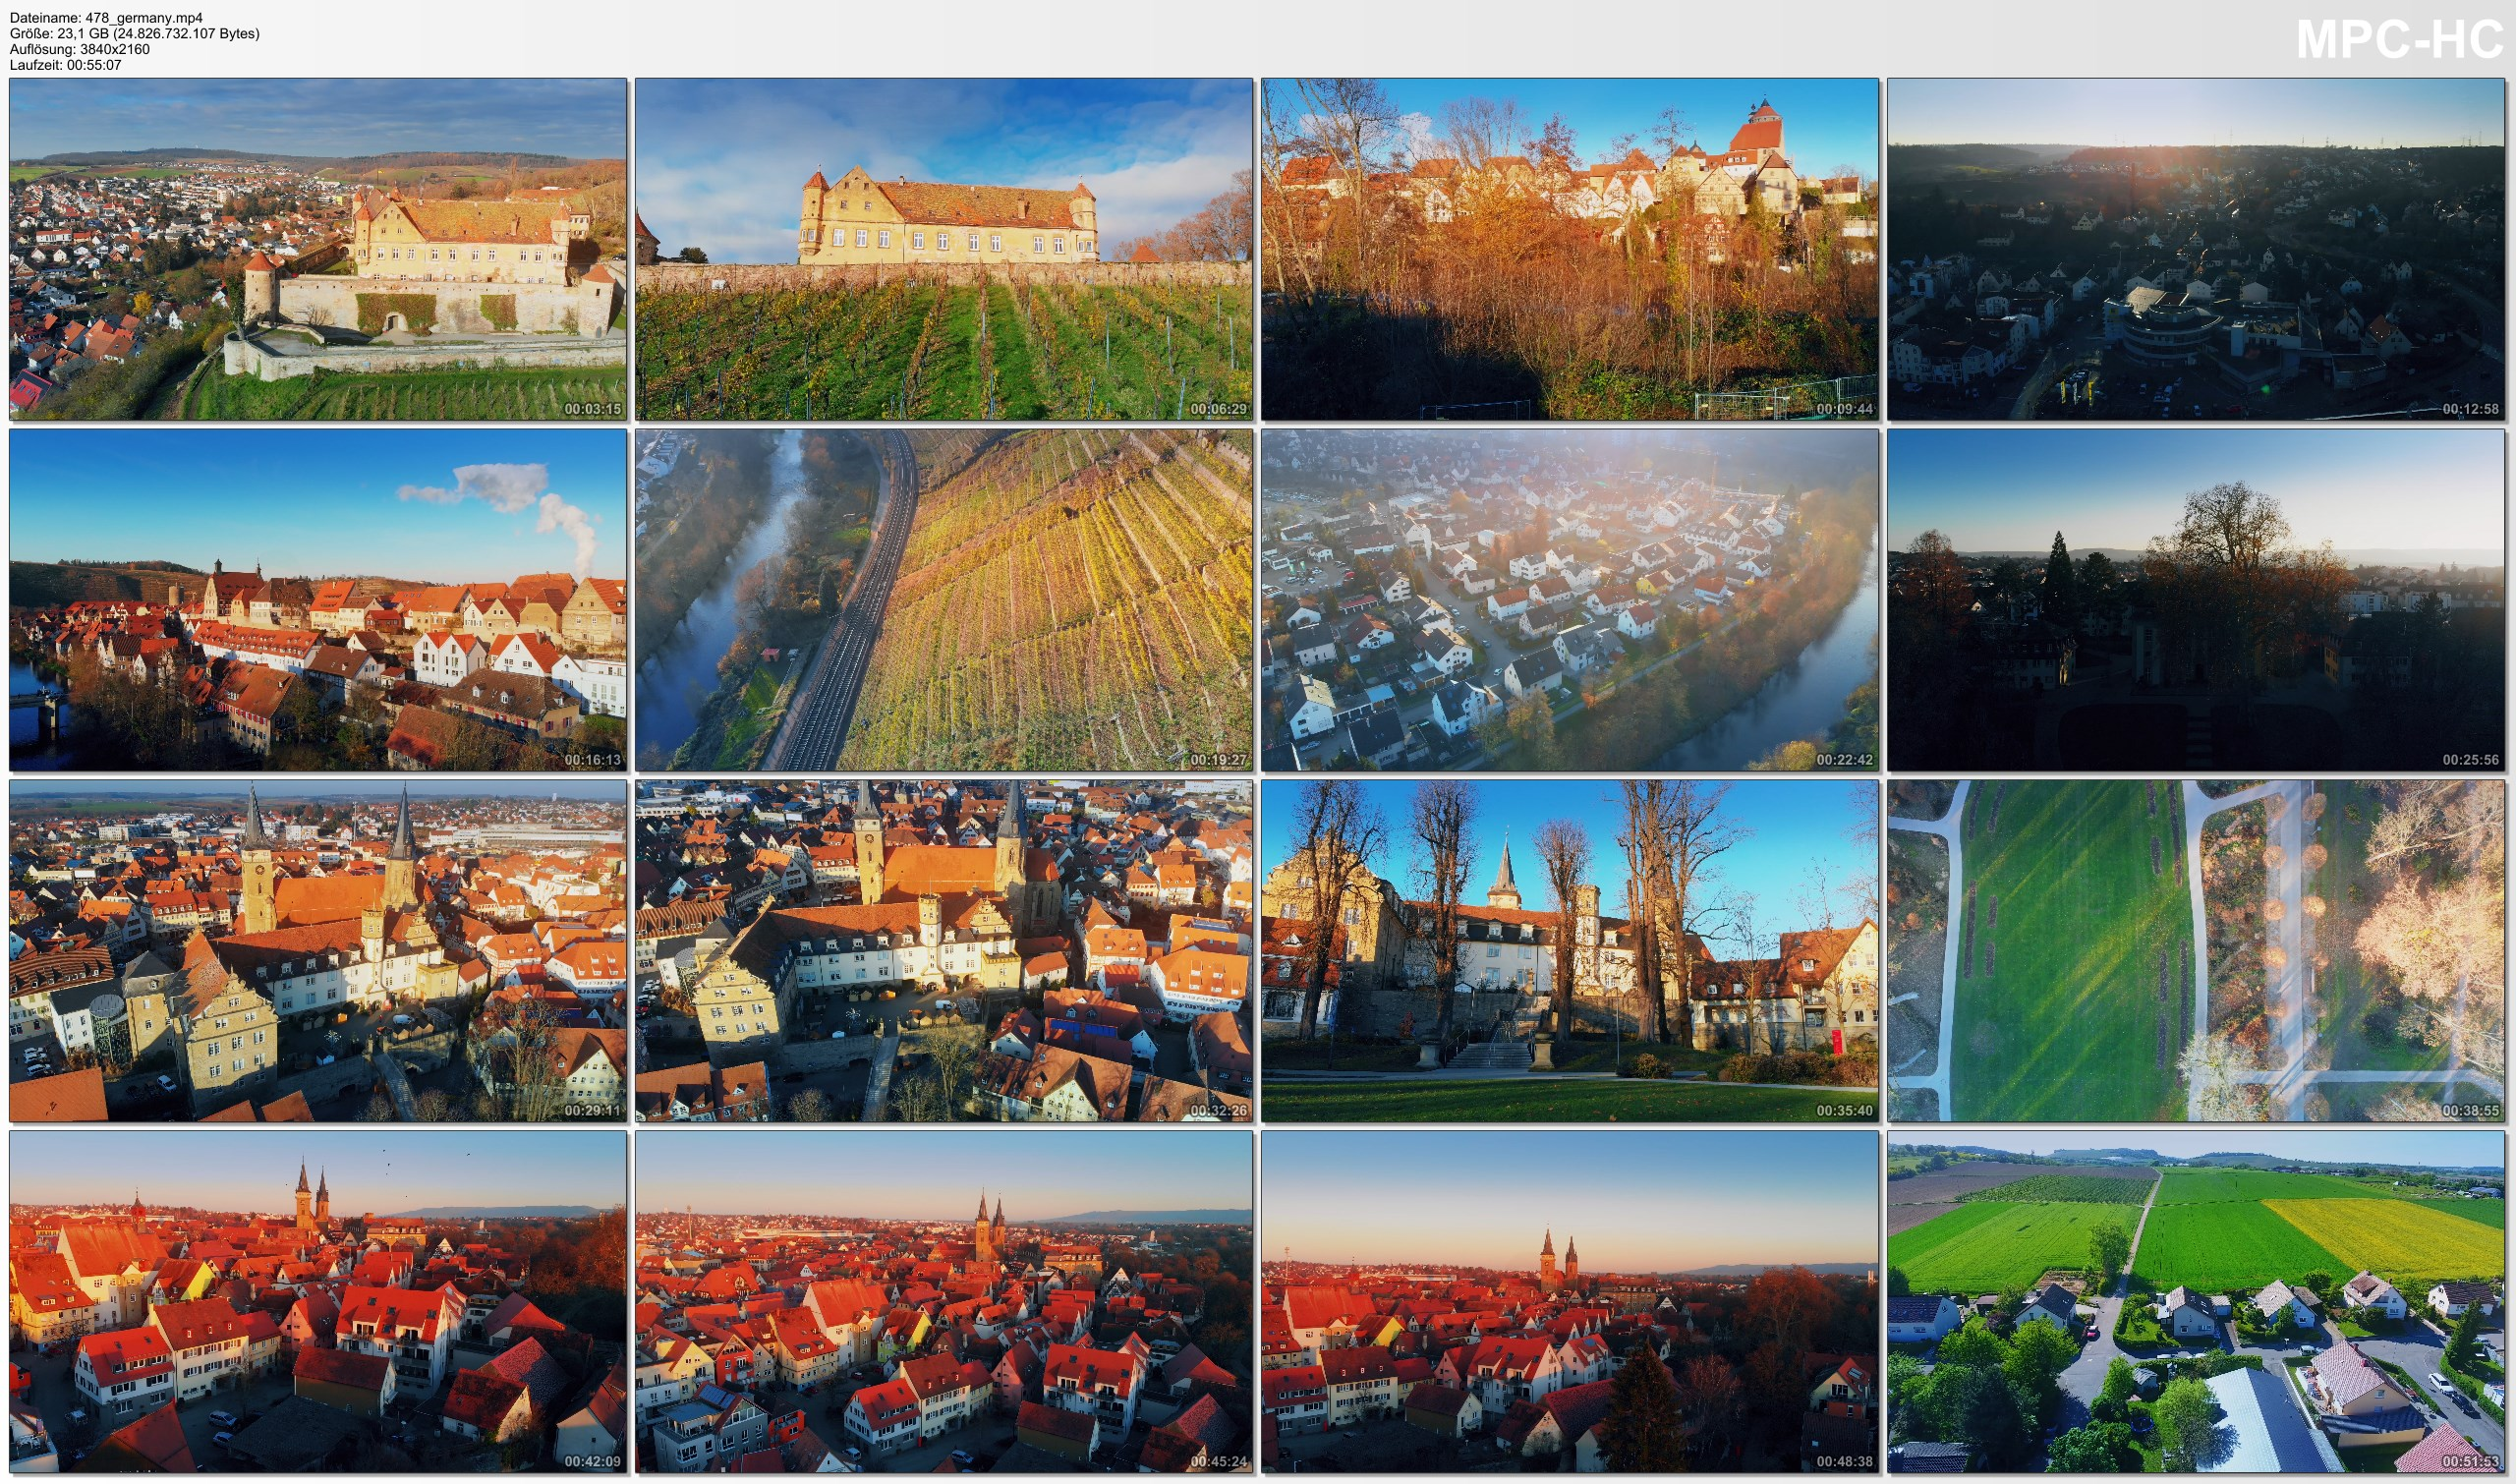 Drone Pictures from Video 【4K】Drone RAW Footage | This is GERMANY 2020 | Oehringen | Baden-Wuerttemberg | UltraHD Stock Video